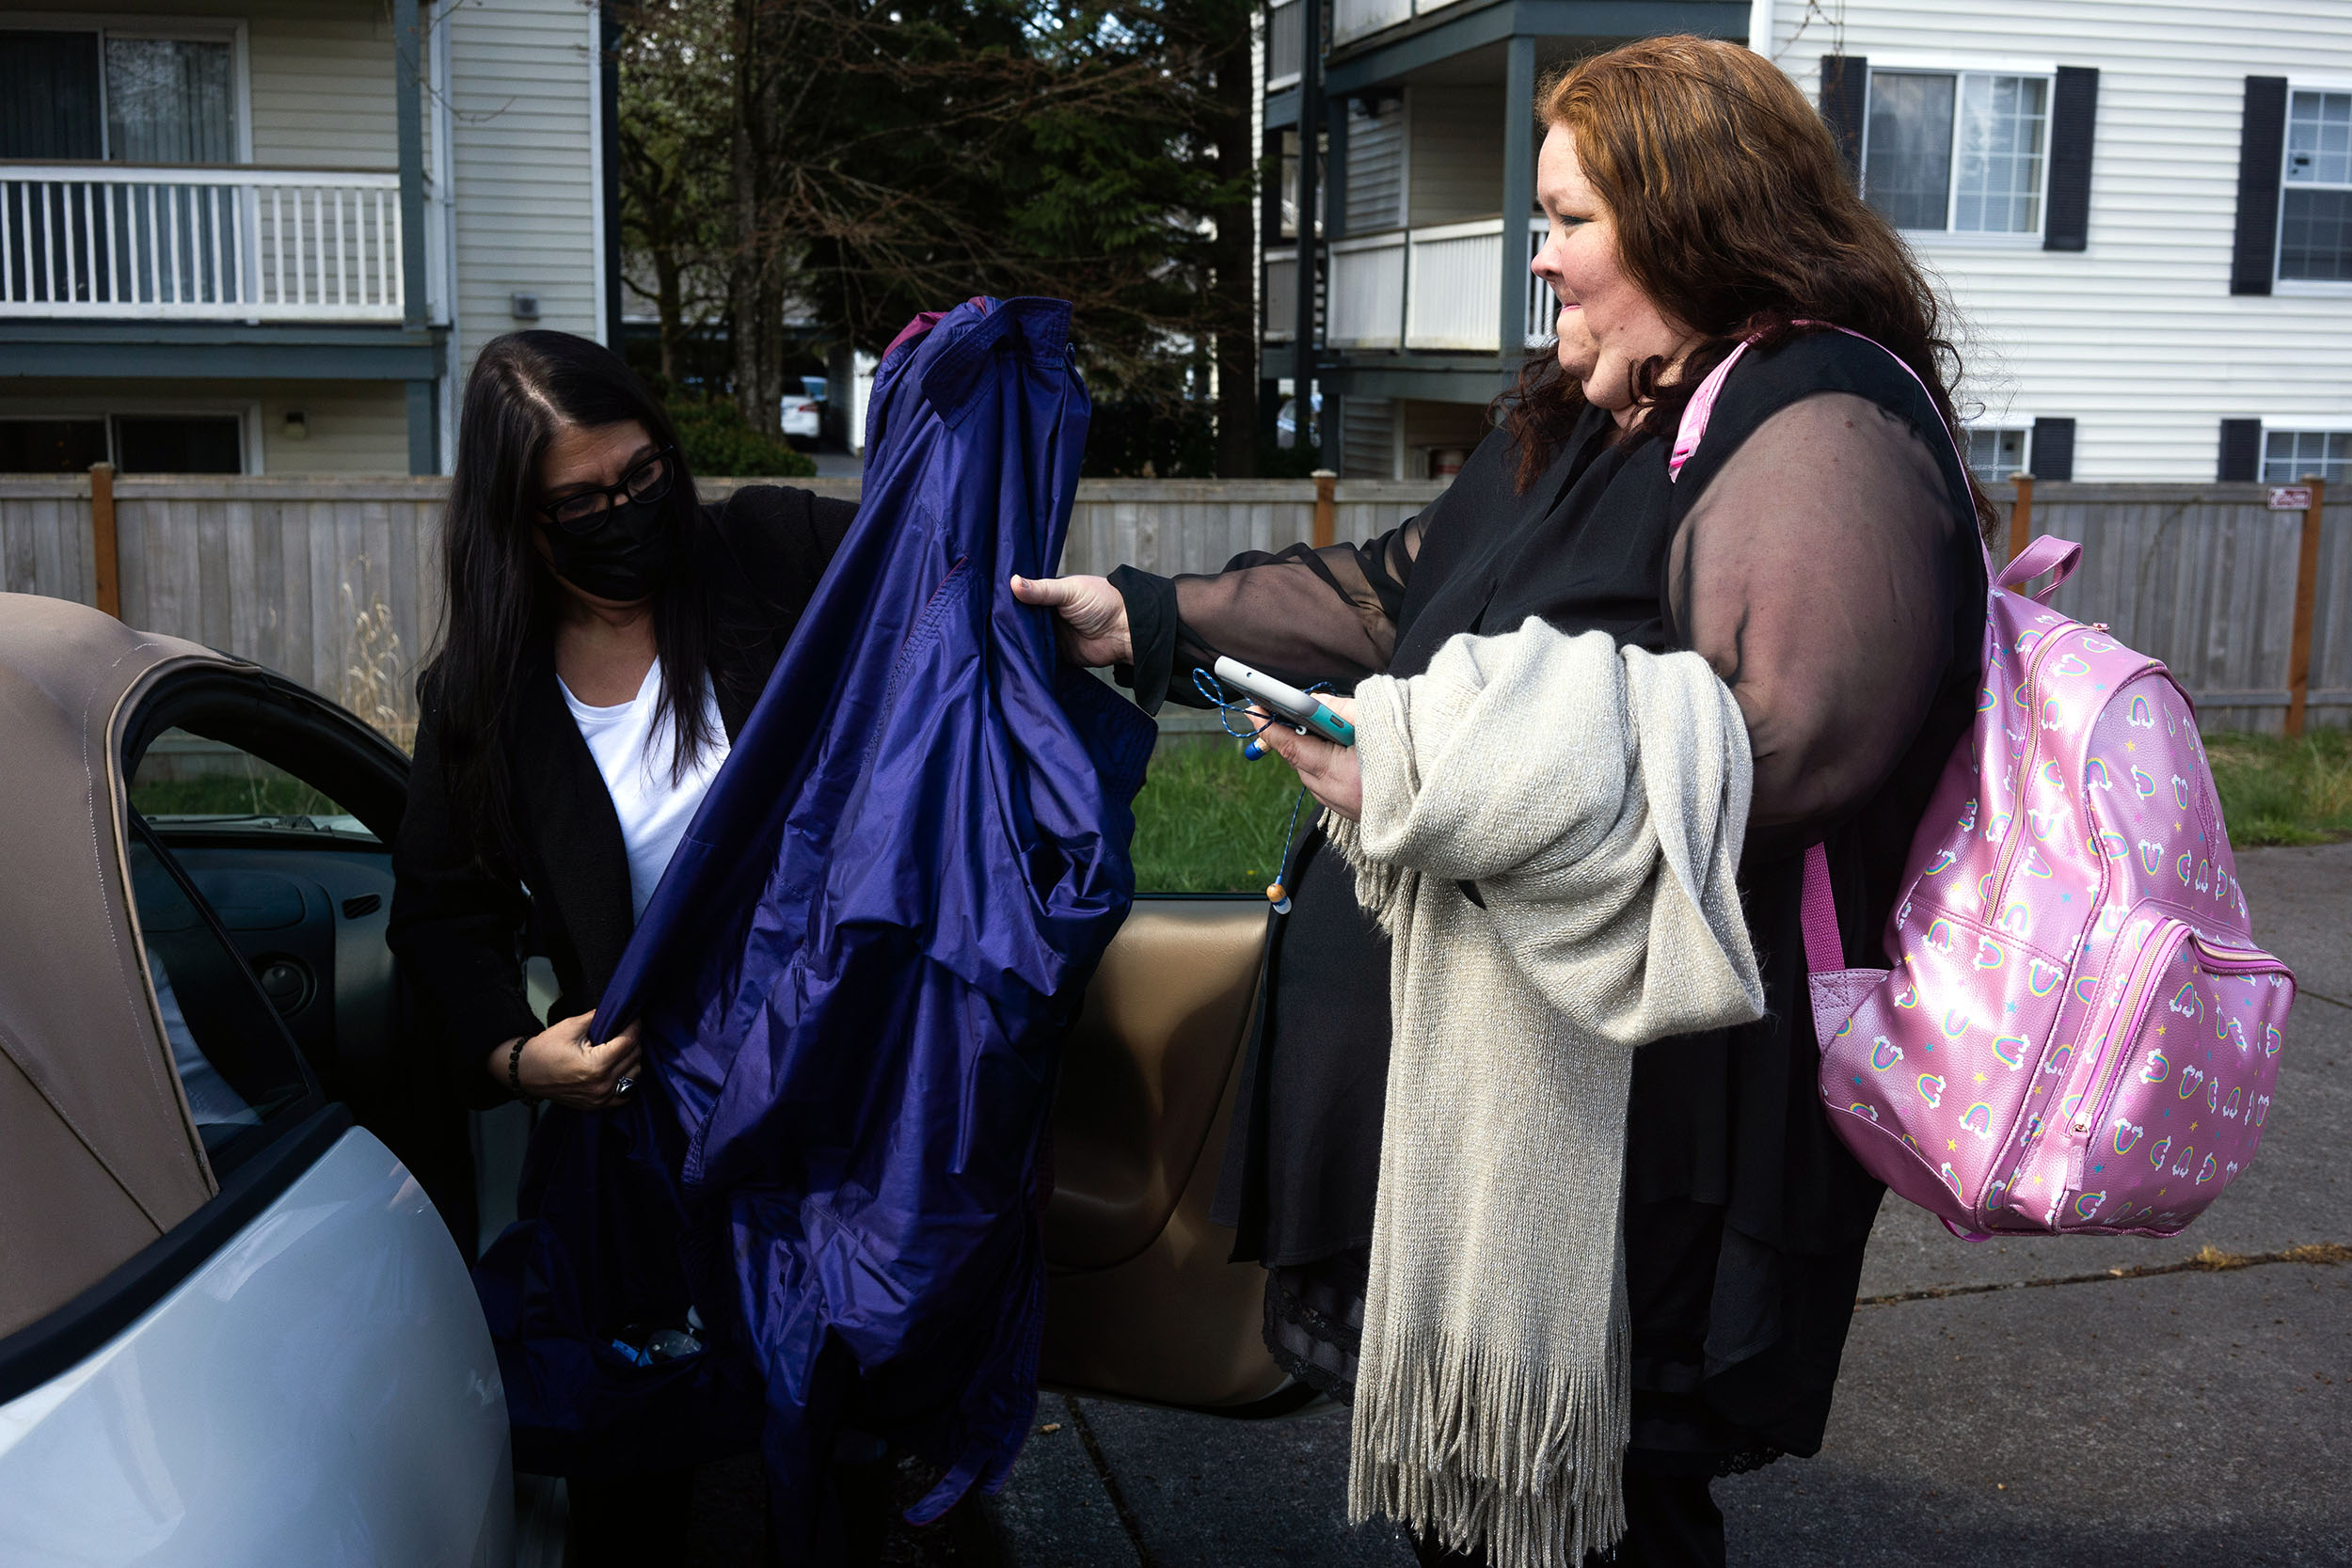 A woman grabs some clothing from another person who is unloading a car.